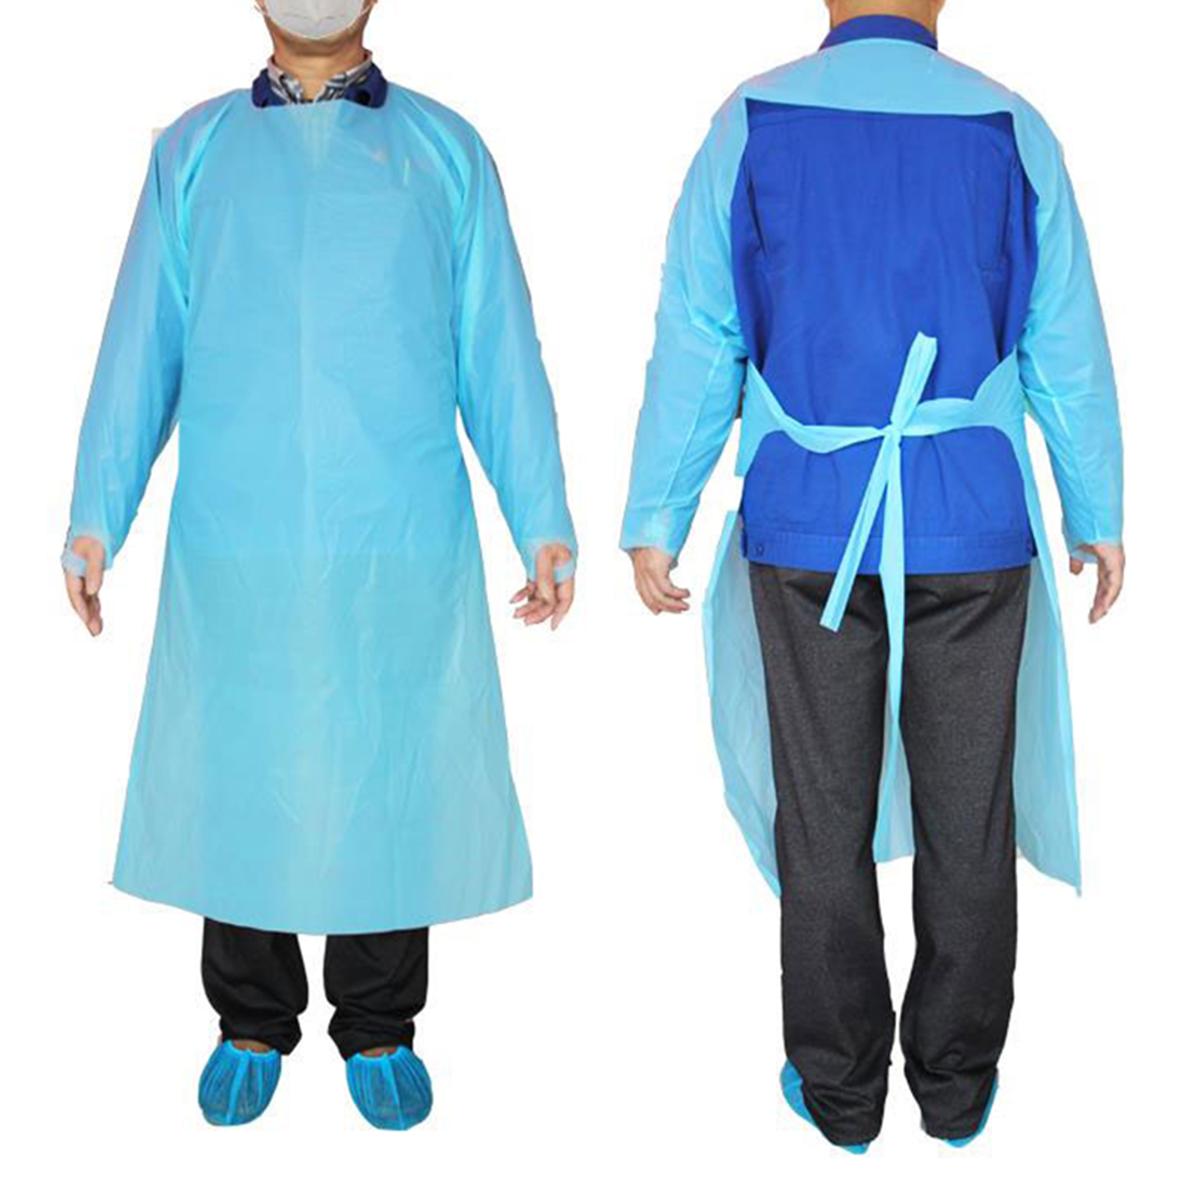 Medical Isolation Gown - Open Back (Impermeable Polypropylene)